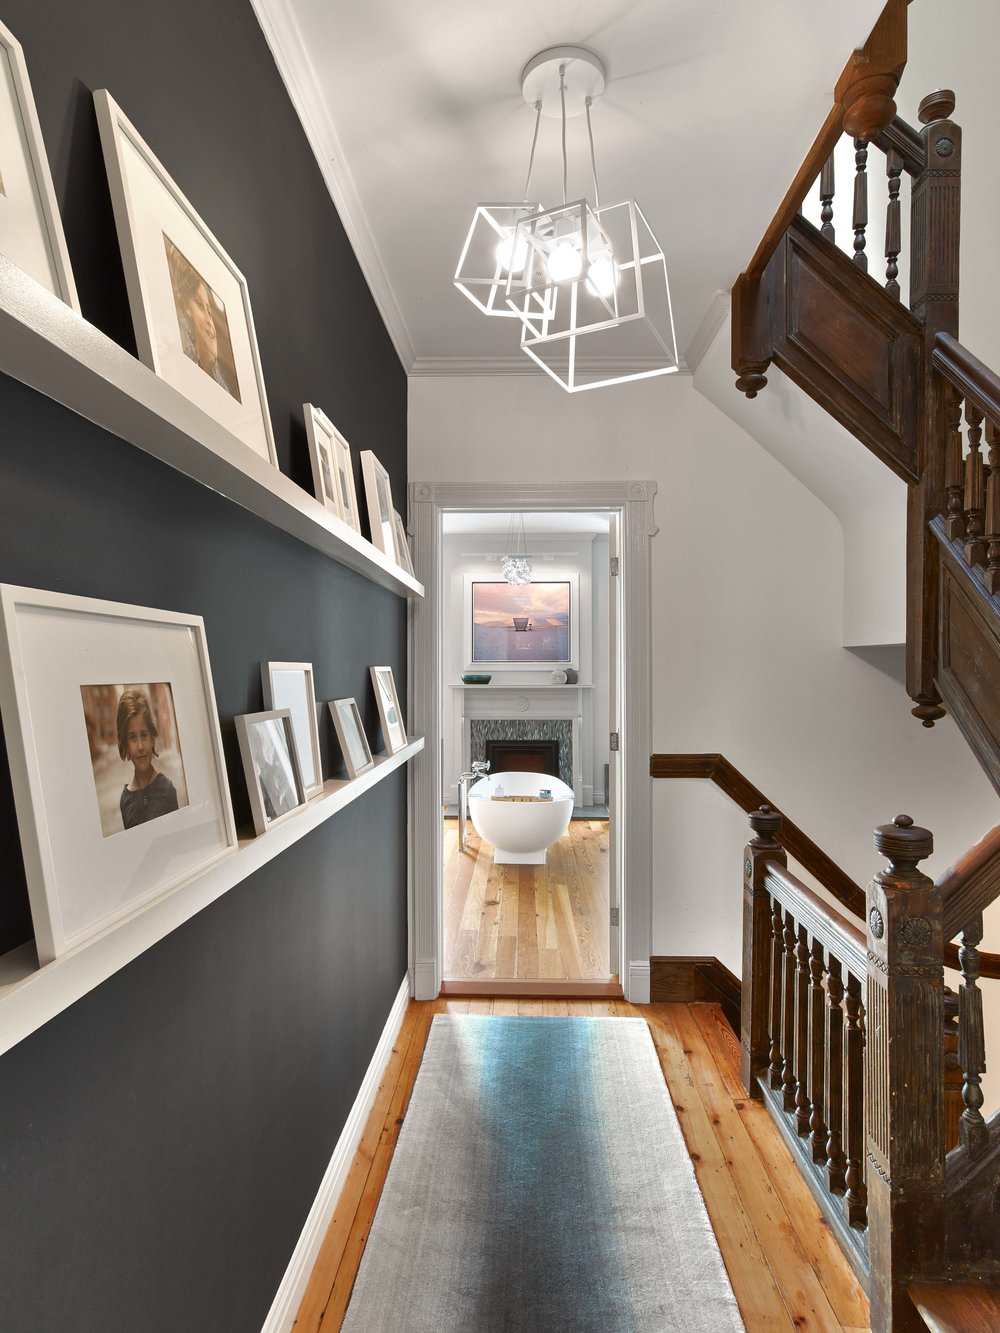 Hallway-Family-Photos-Modern-Bathtub-View-JMorris-Design-Brooklyn.jpg